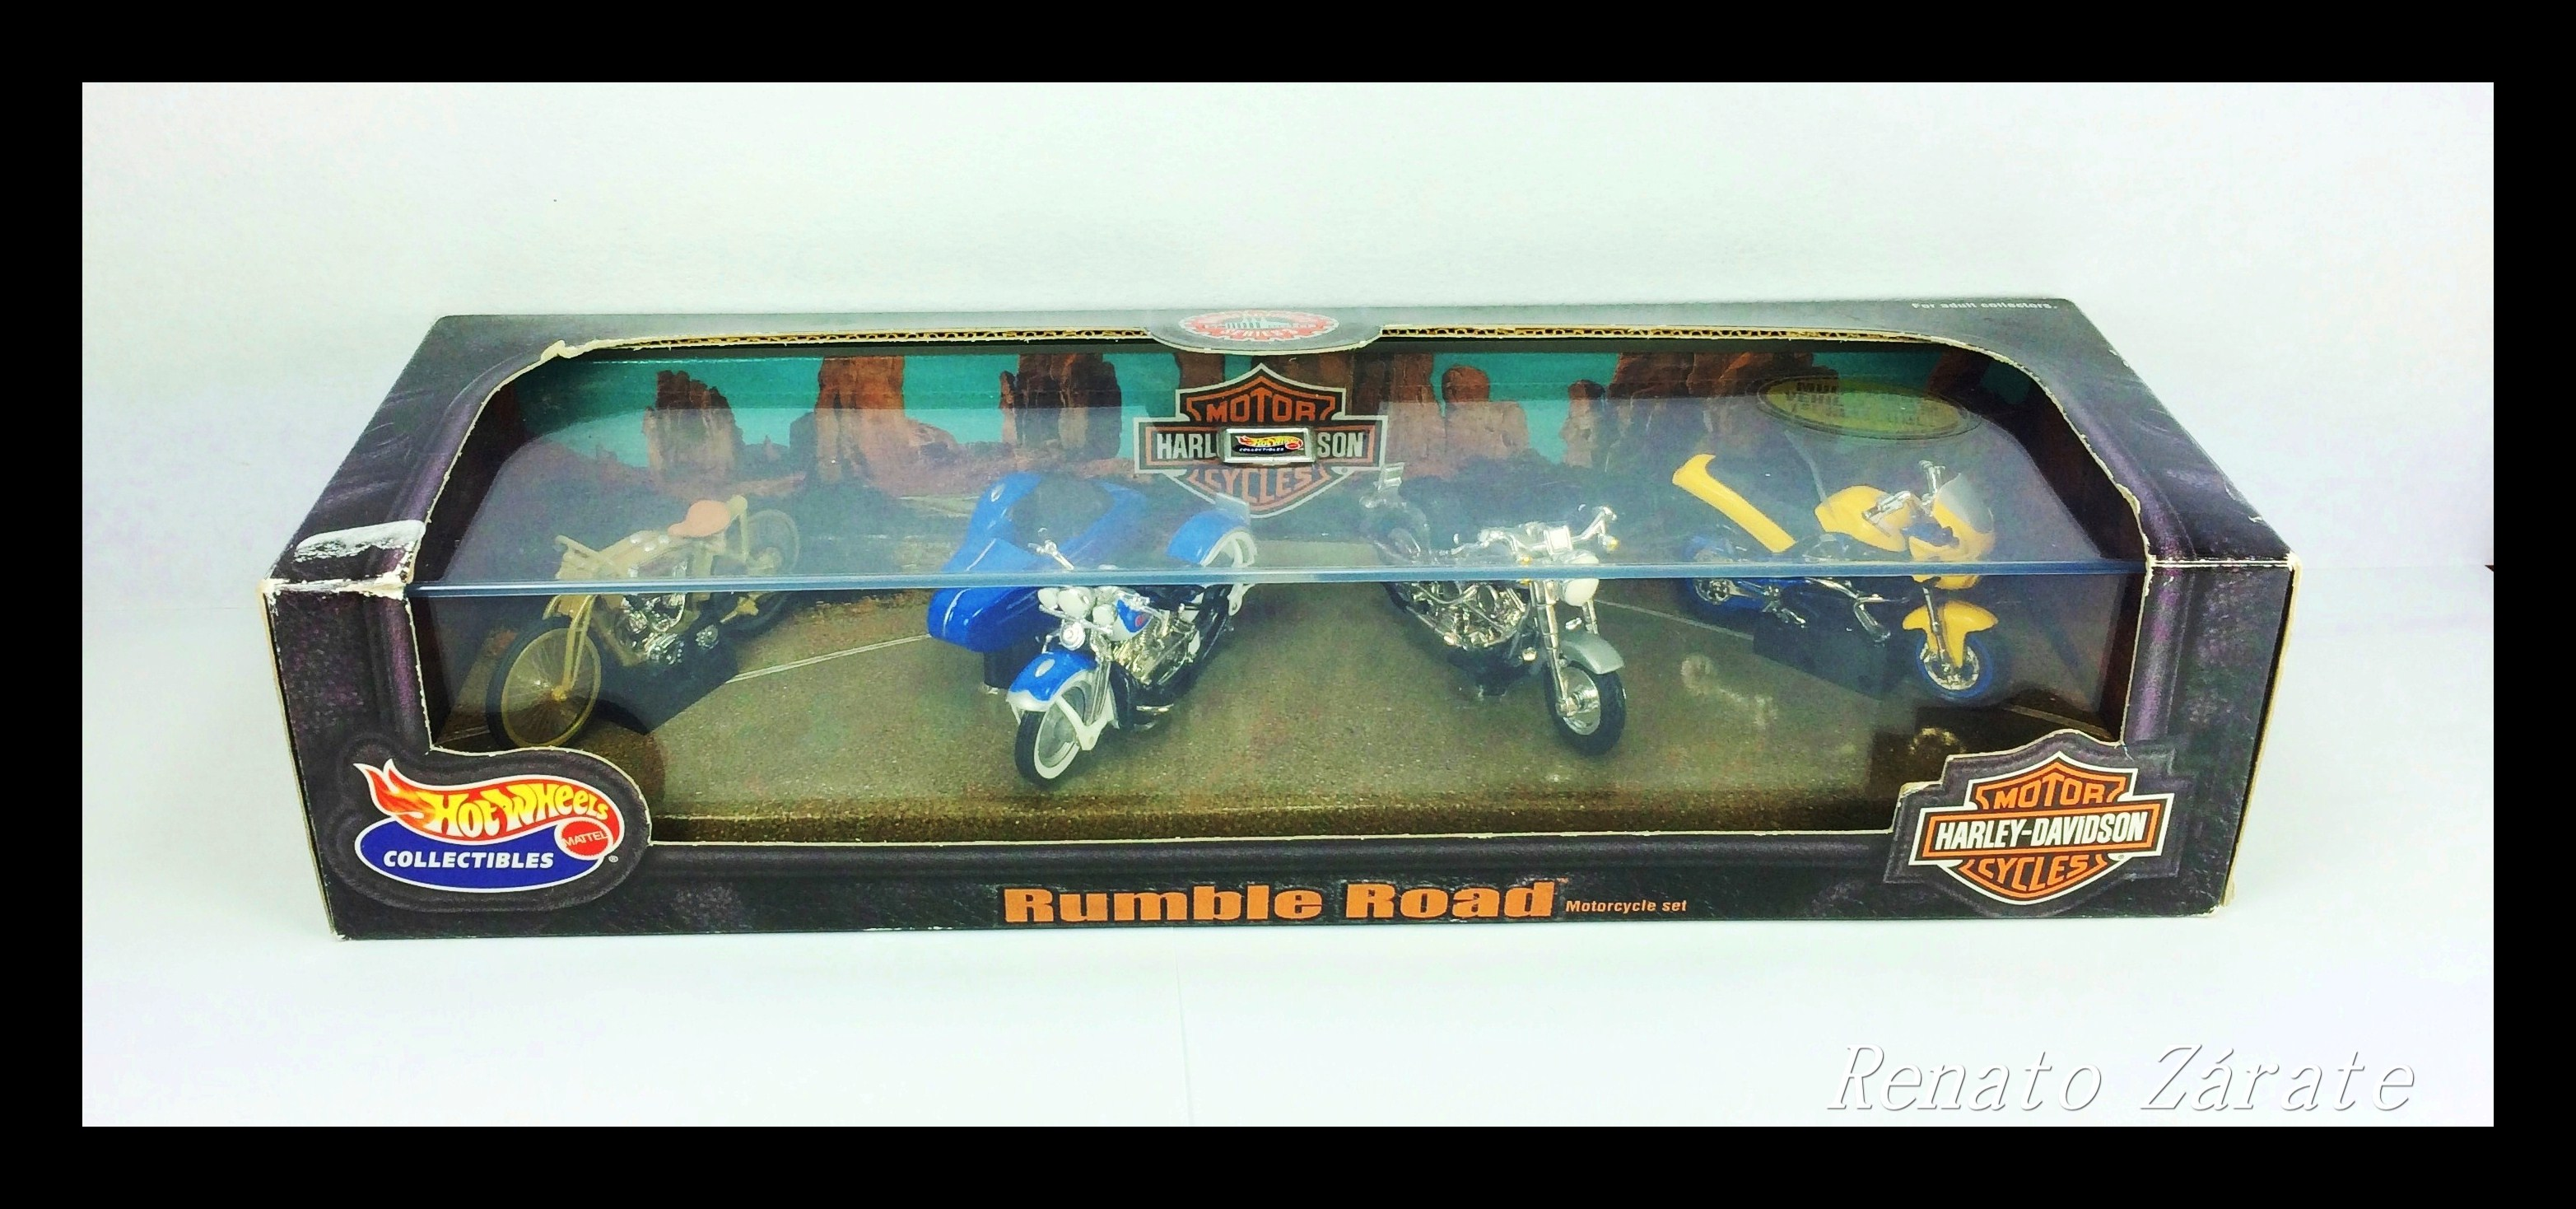 Rumble Road Harley-Davidson